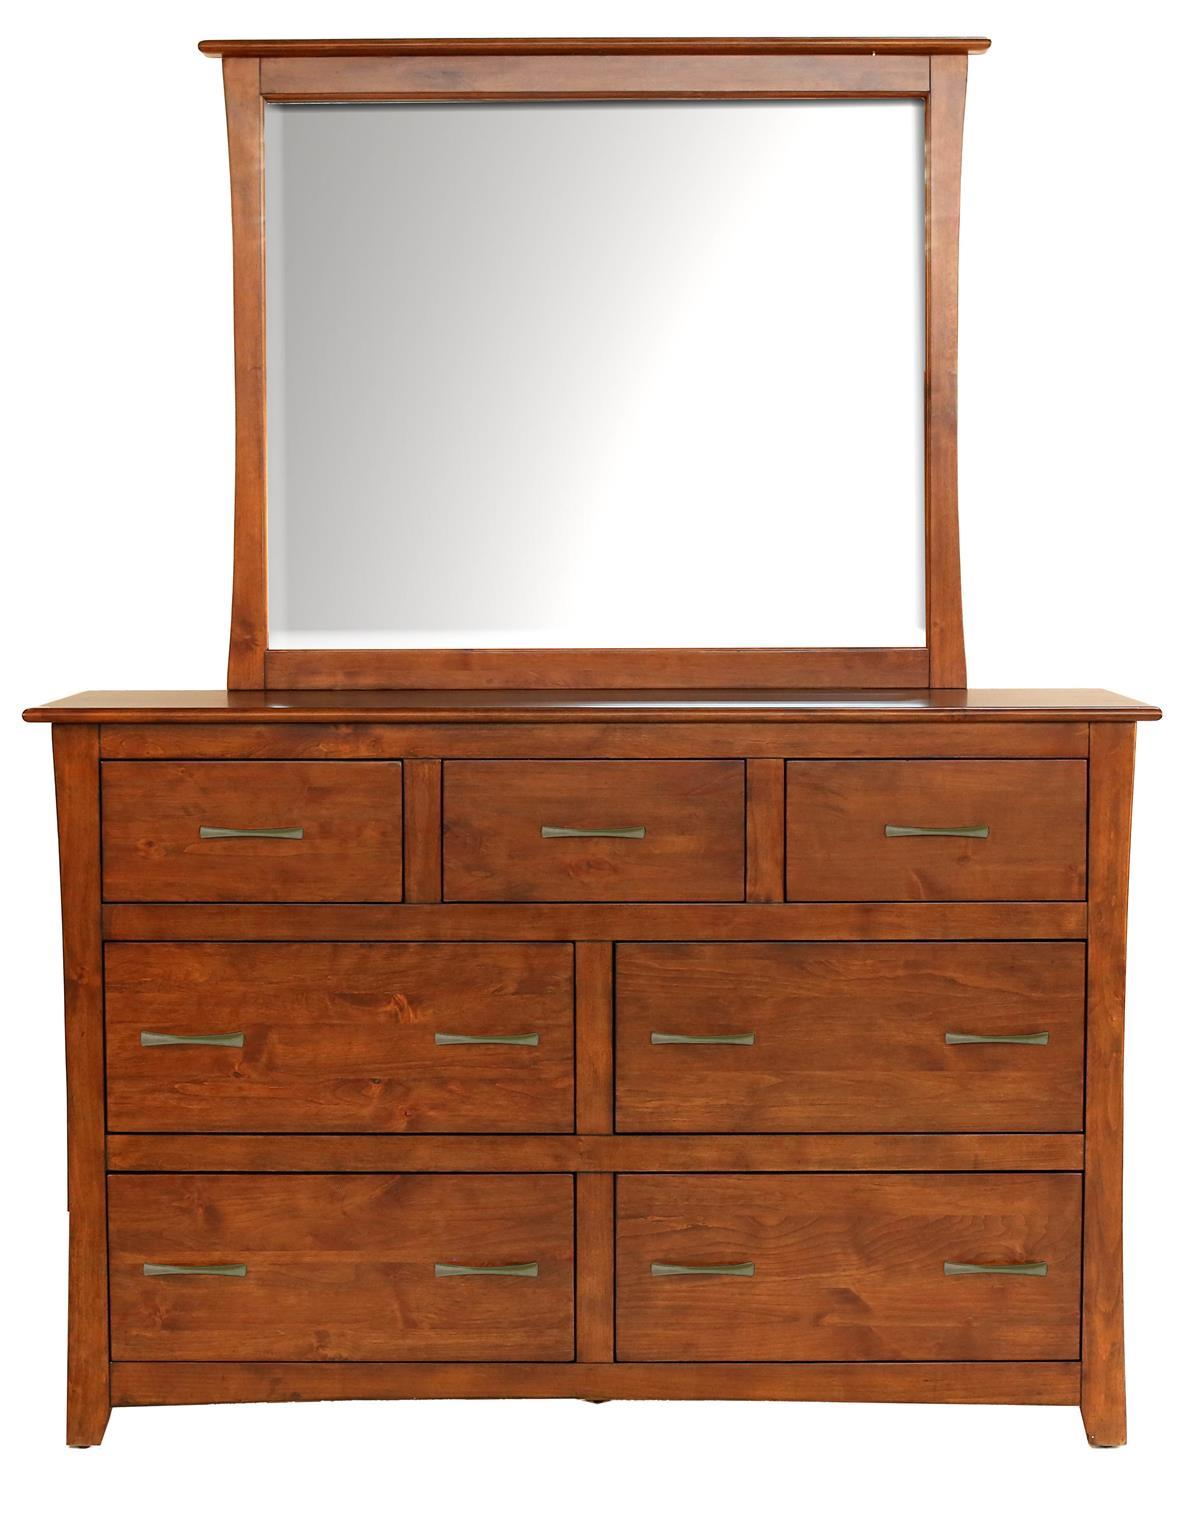 Grant Park Dresser & Mirror Set by A-A at Walker's Furniture